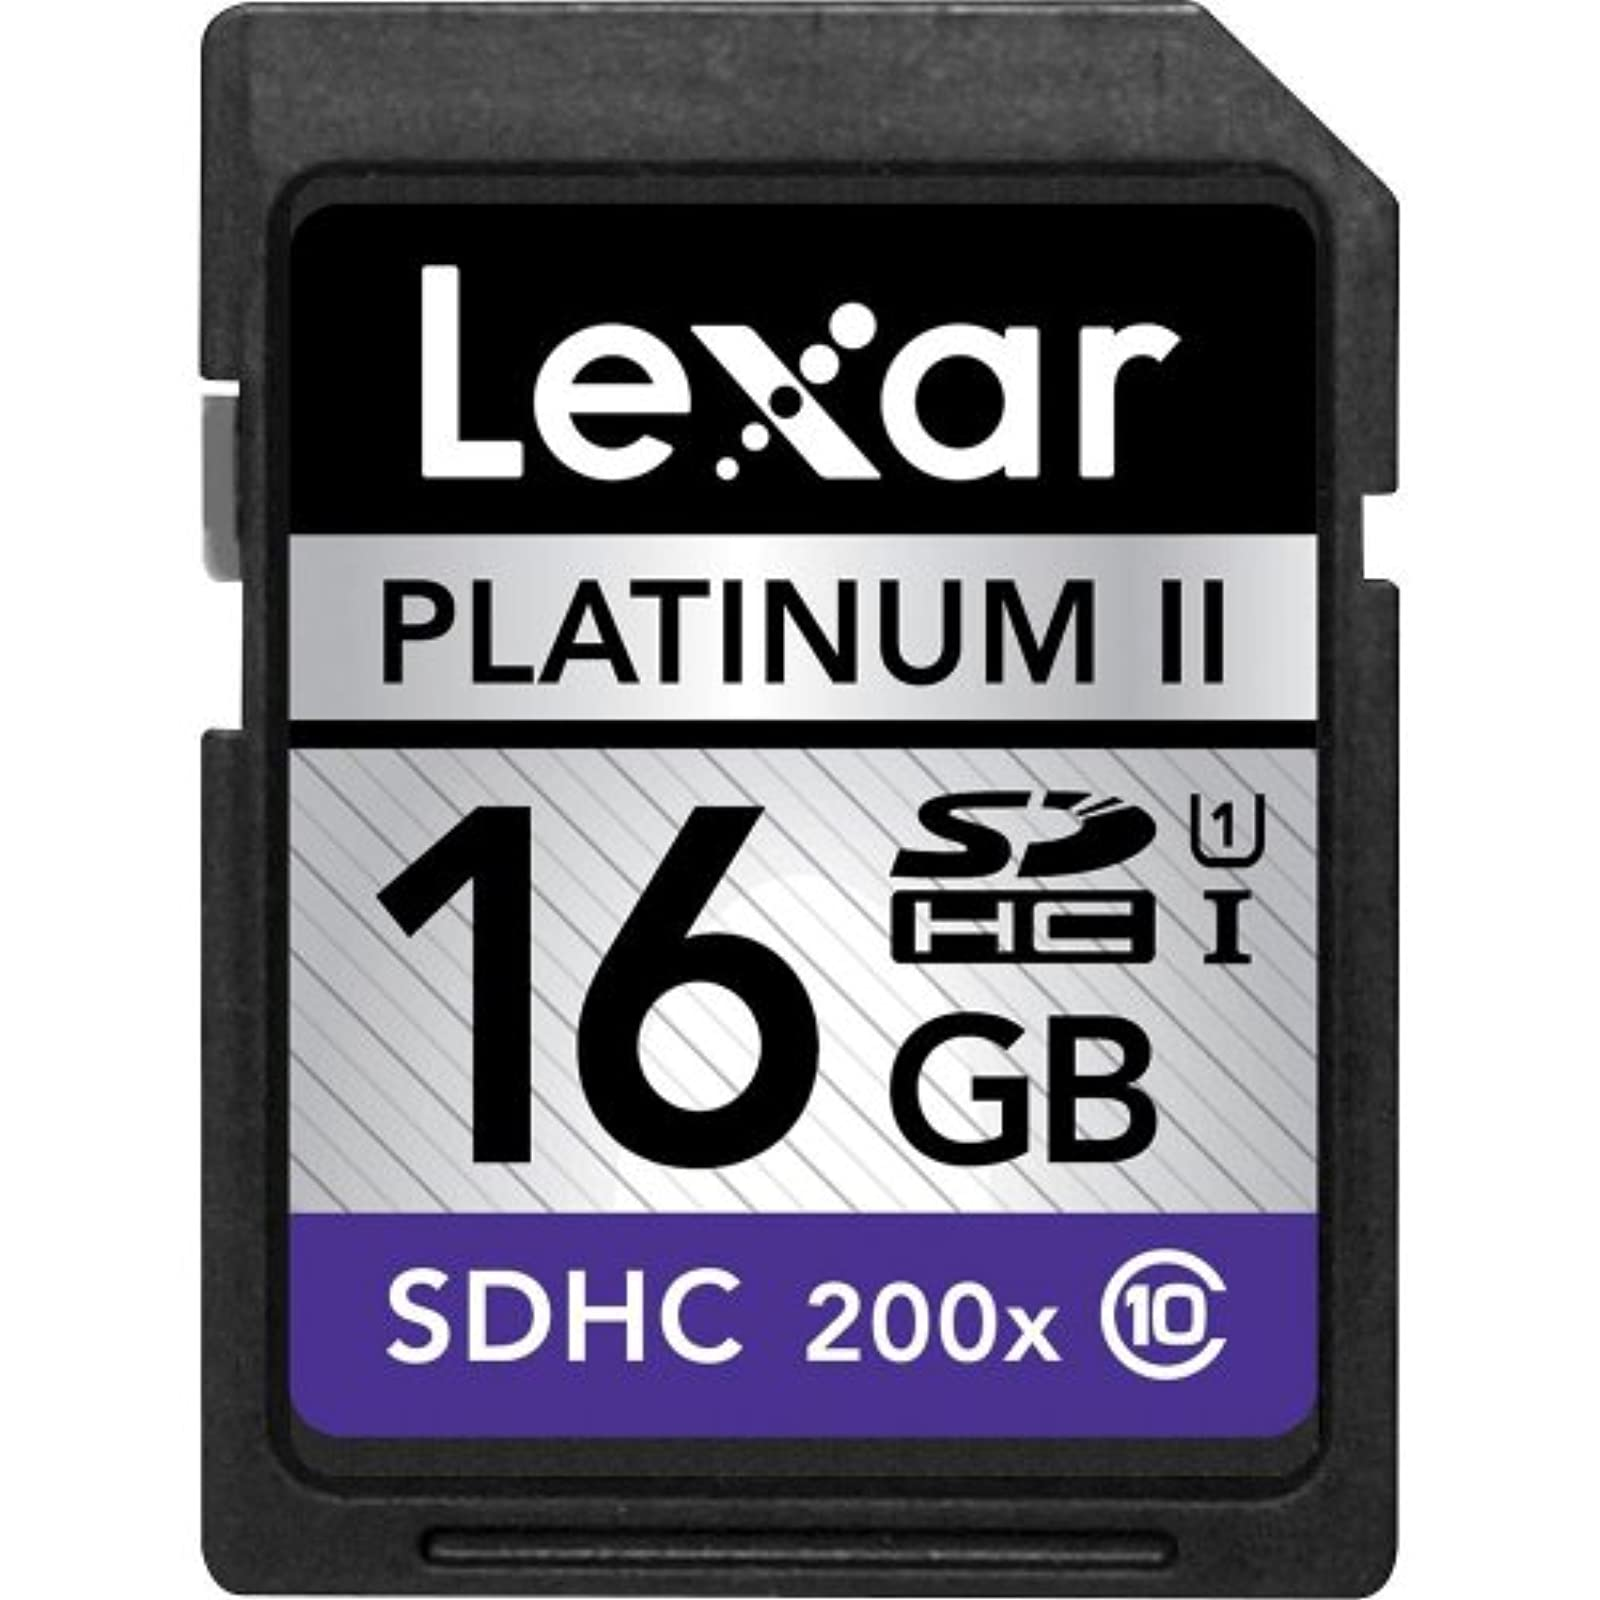 Lexar Media 16GB Platinum II 200X SDHC Memory Card